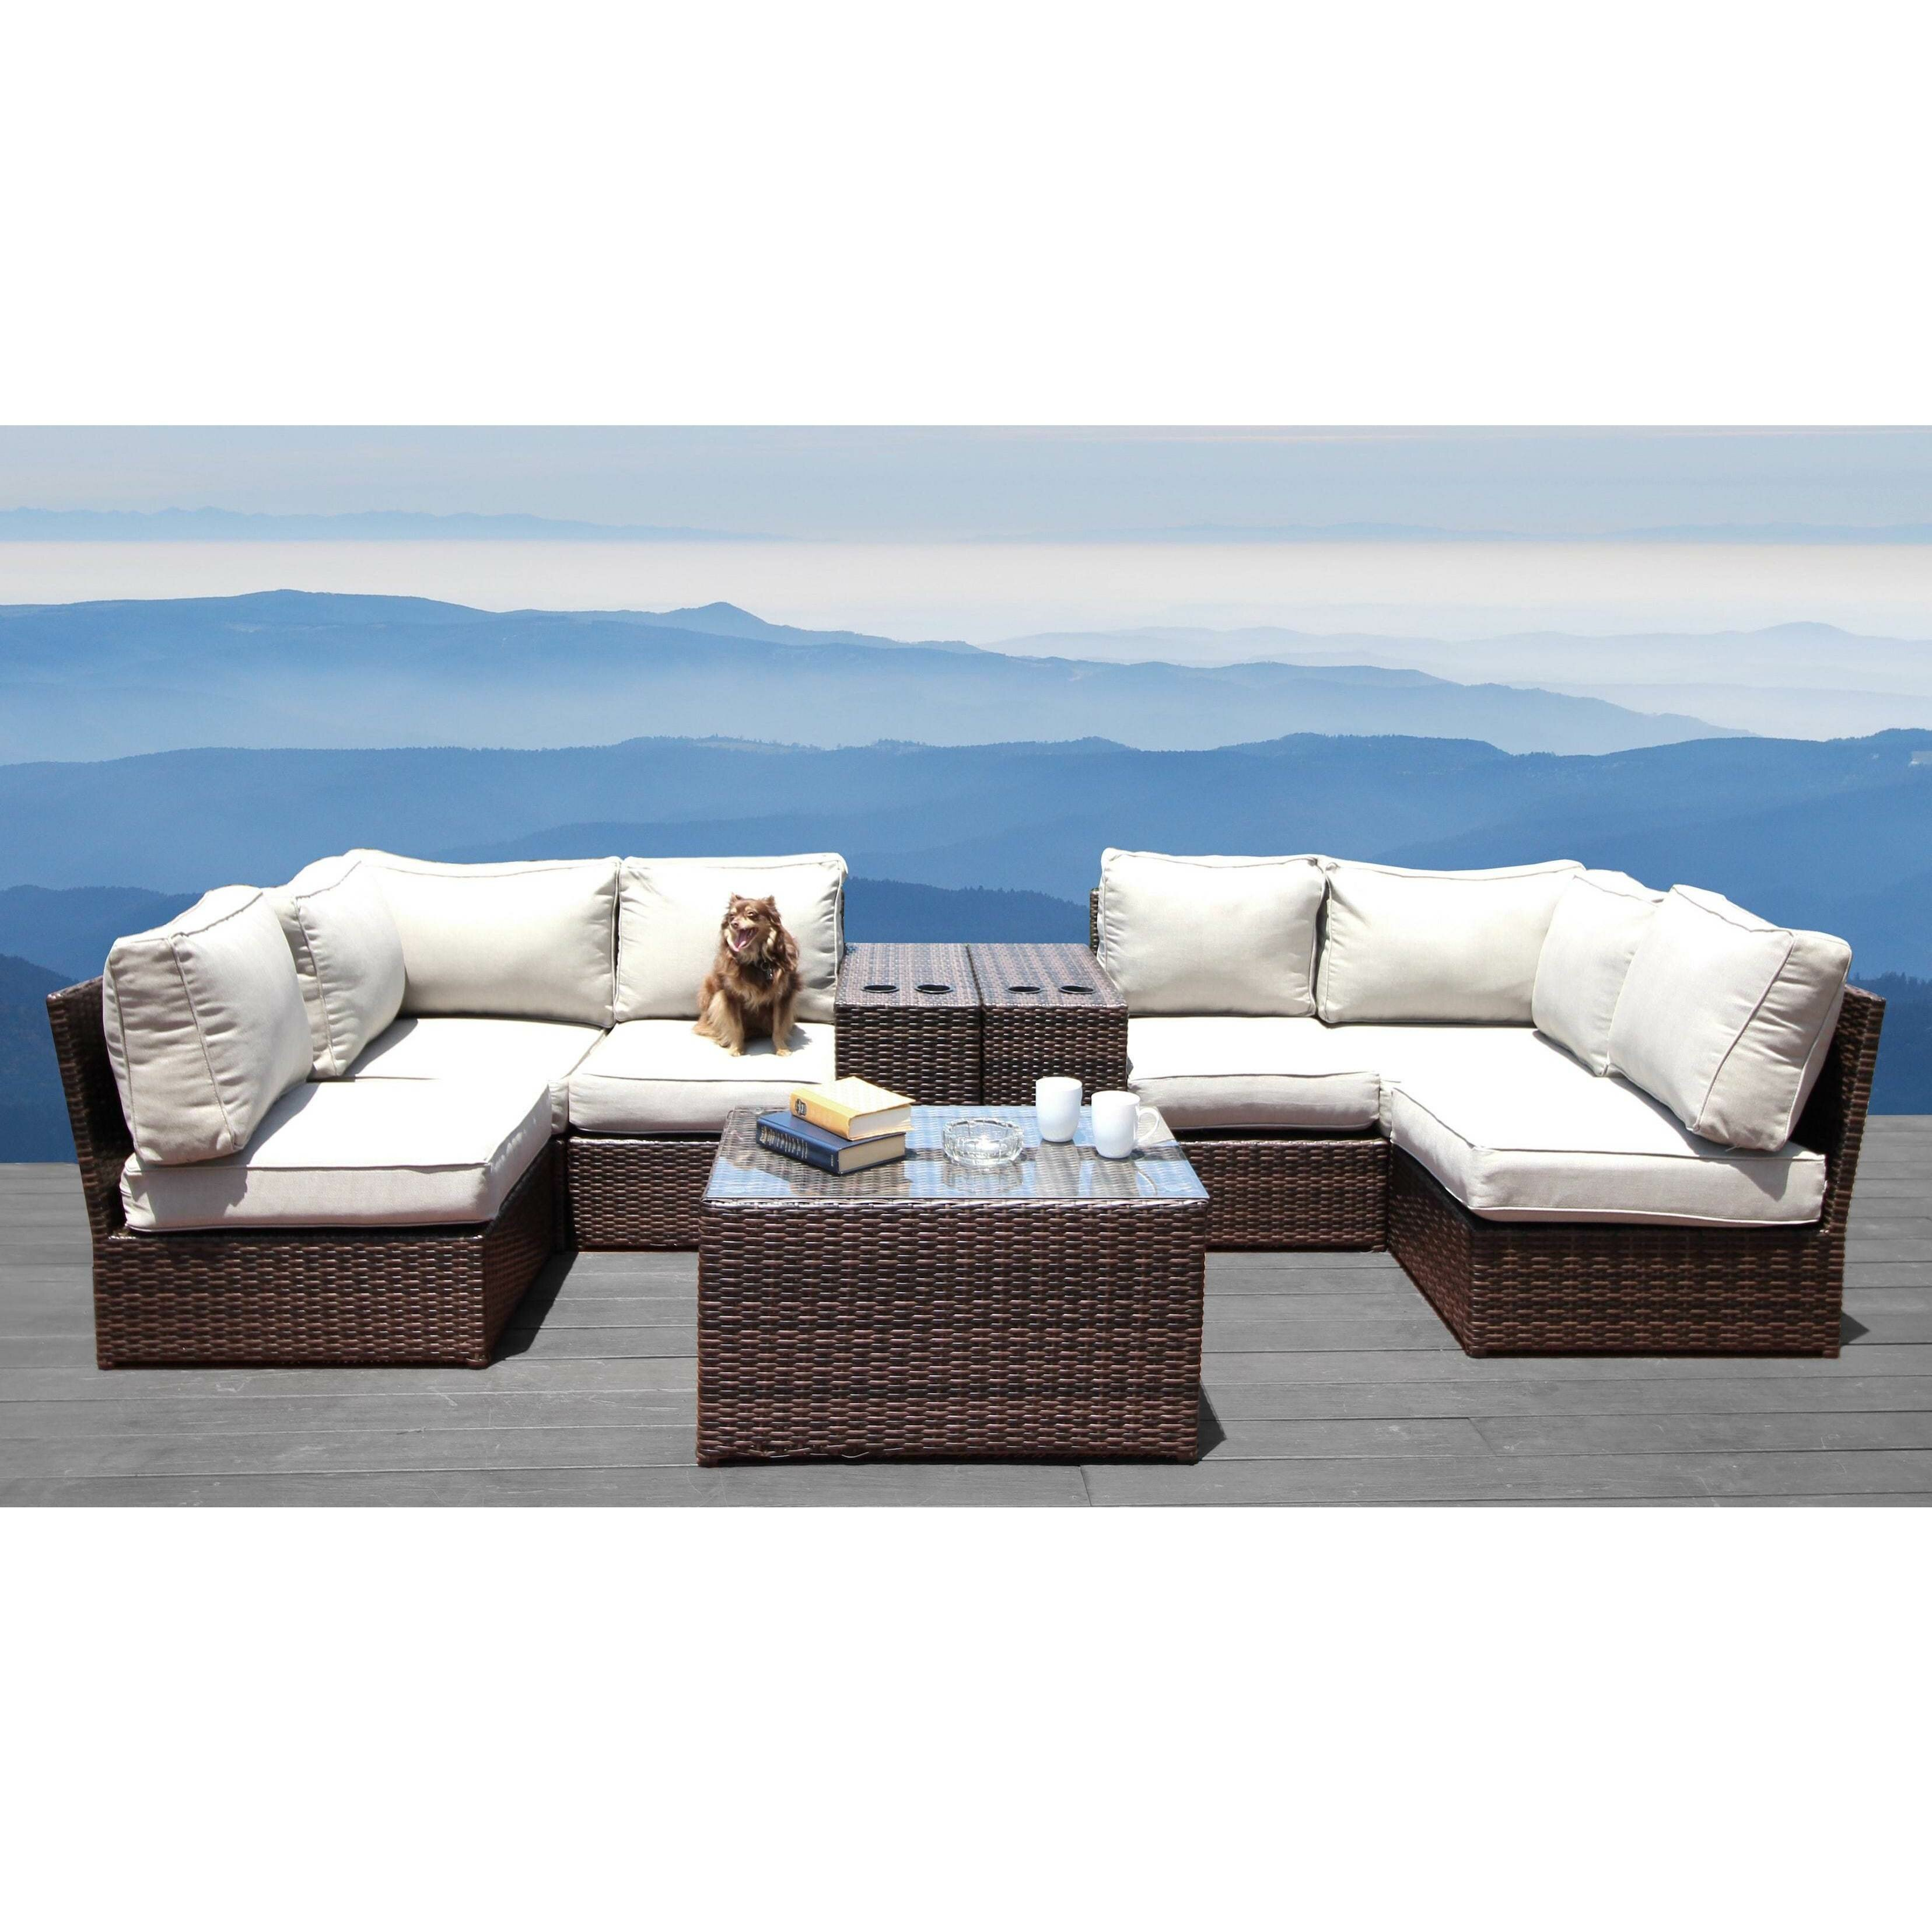 Orren Ellis Vasil 9 Piece Sectional Seating Group With Cushions Reviews Wayfair